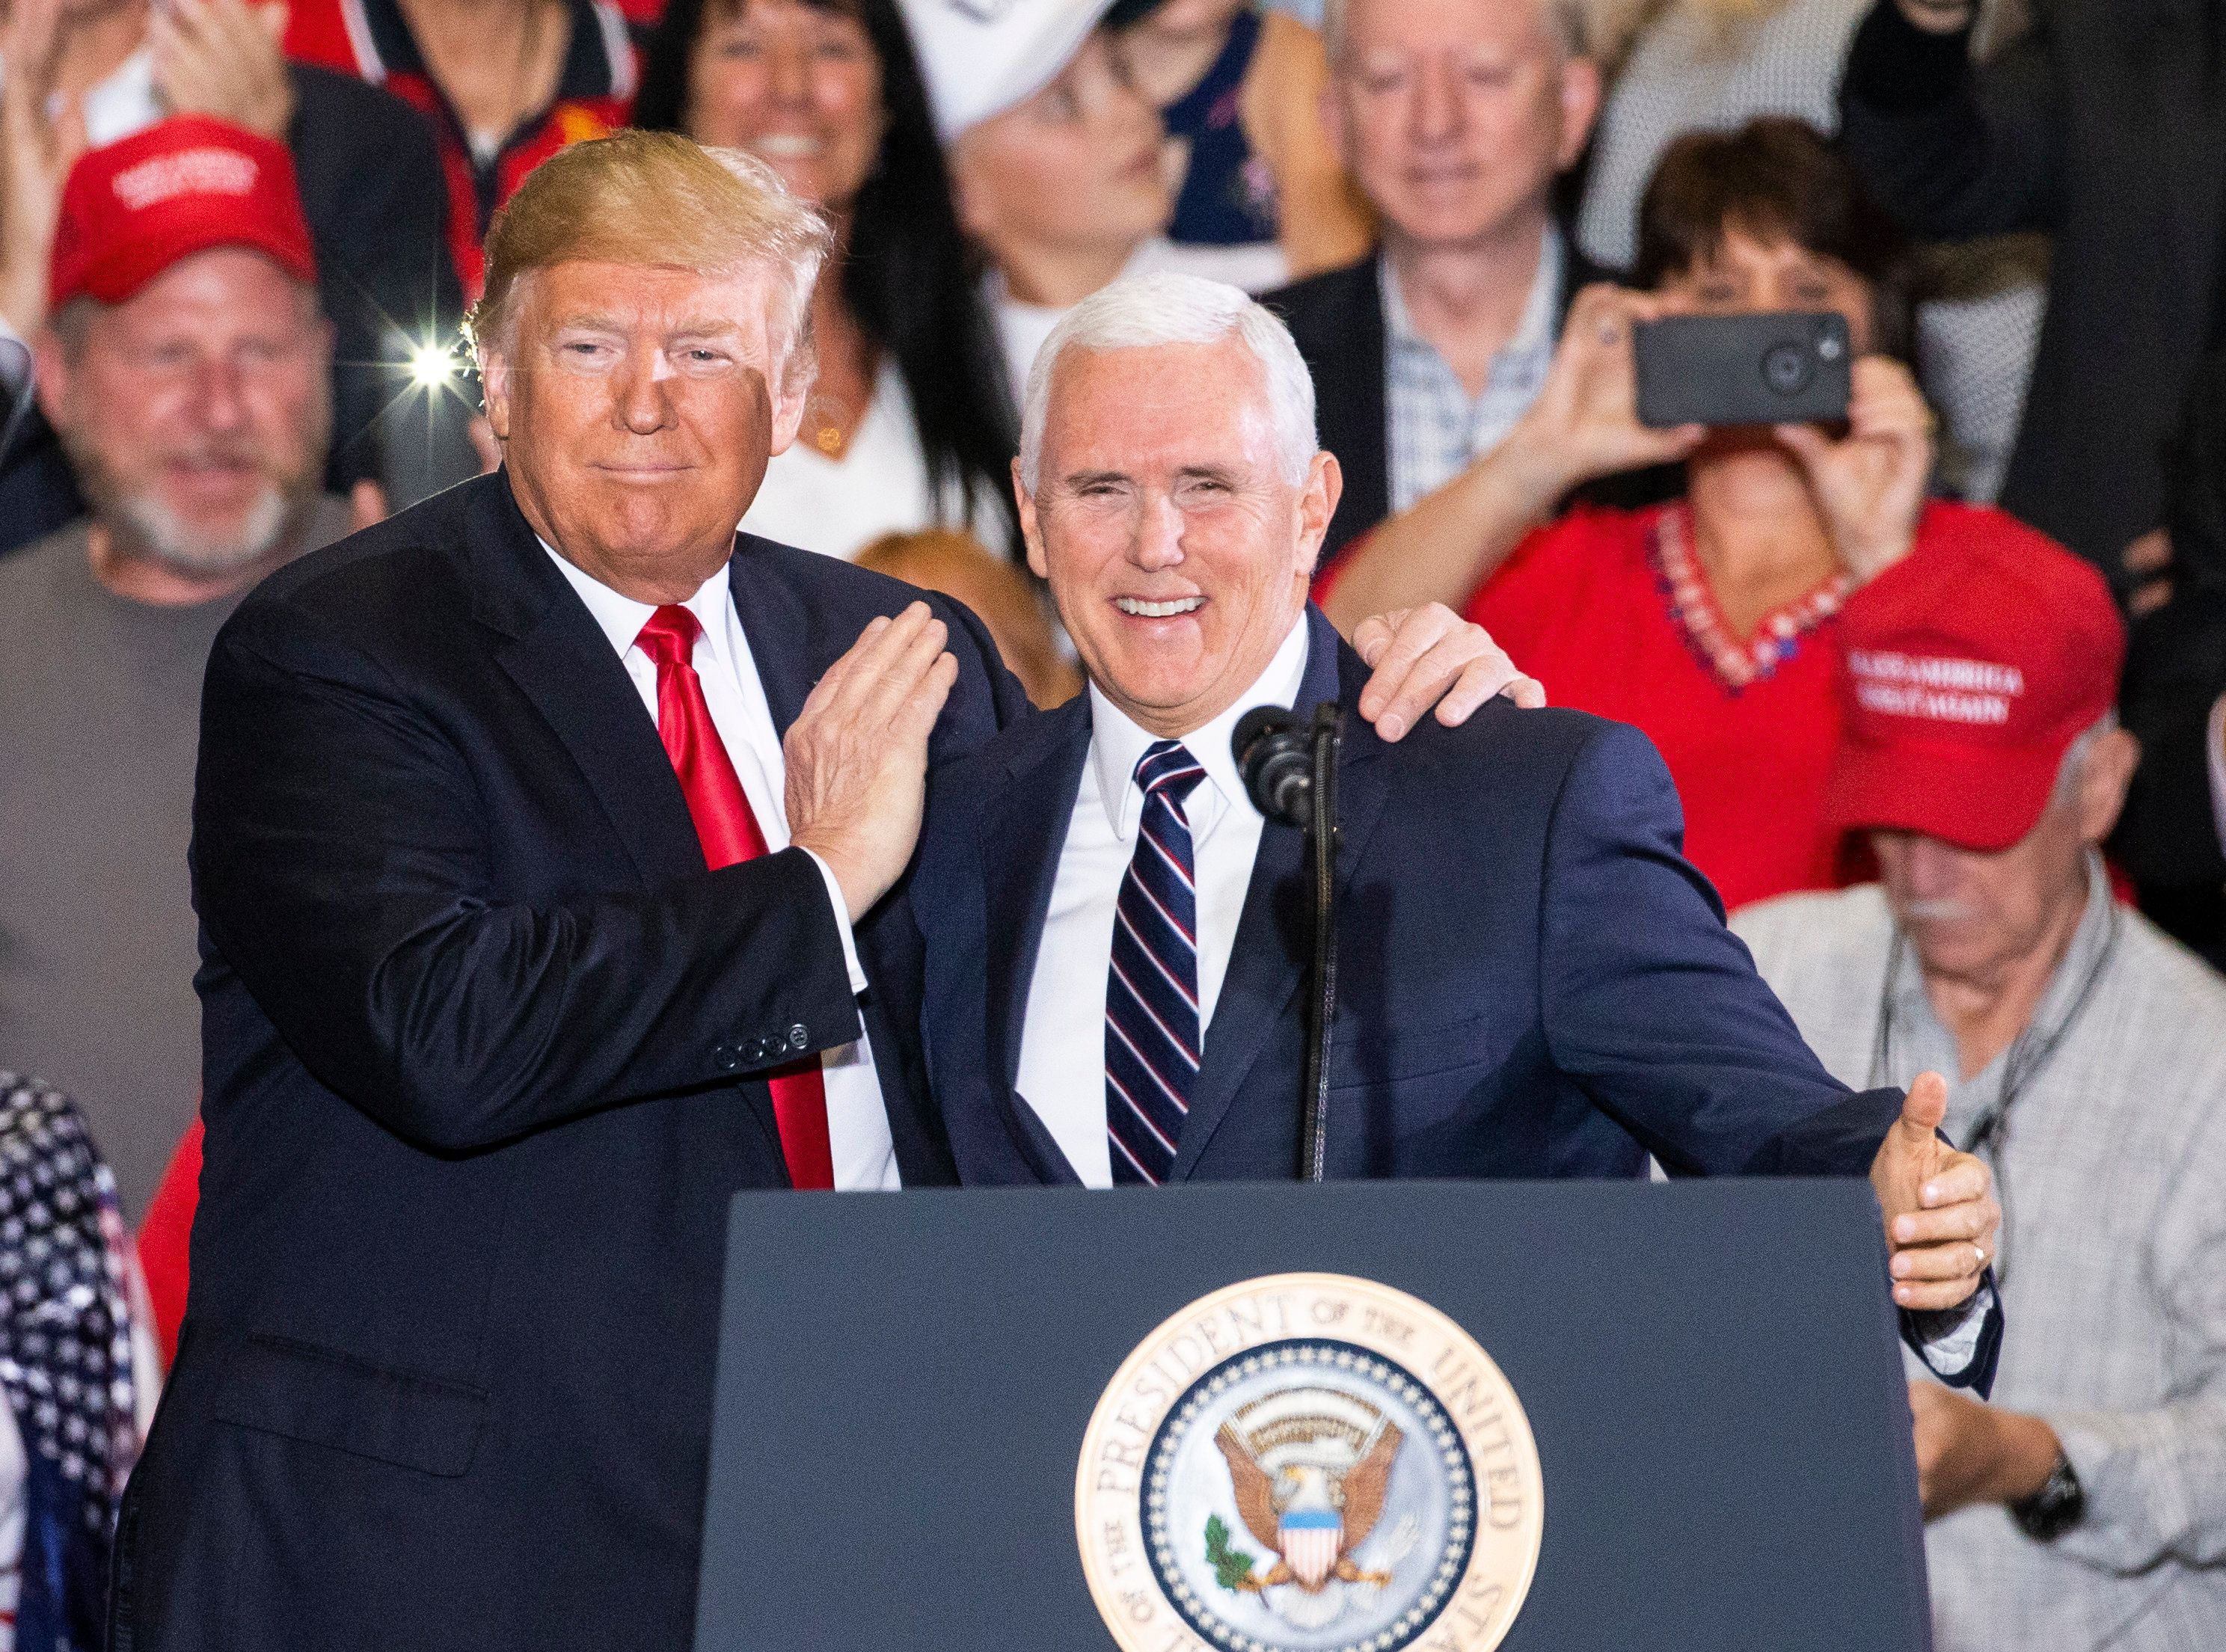 PENSACOLA, FL - NOVEMBER 03: U.S. President Donald Trump and Vice President Mike Pence at a campaign rally at the Pensacola International Airport on November 3, 2018 in Pensacola, Florida. President Trump is campaigning in support of Republican candidates in the upcoming midterm elections. (Photo by Mark Wallheiser/Getty Images)